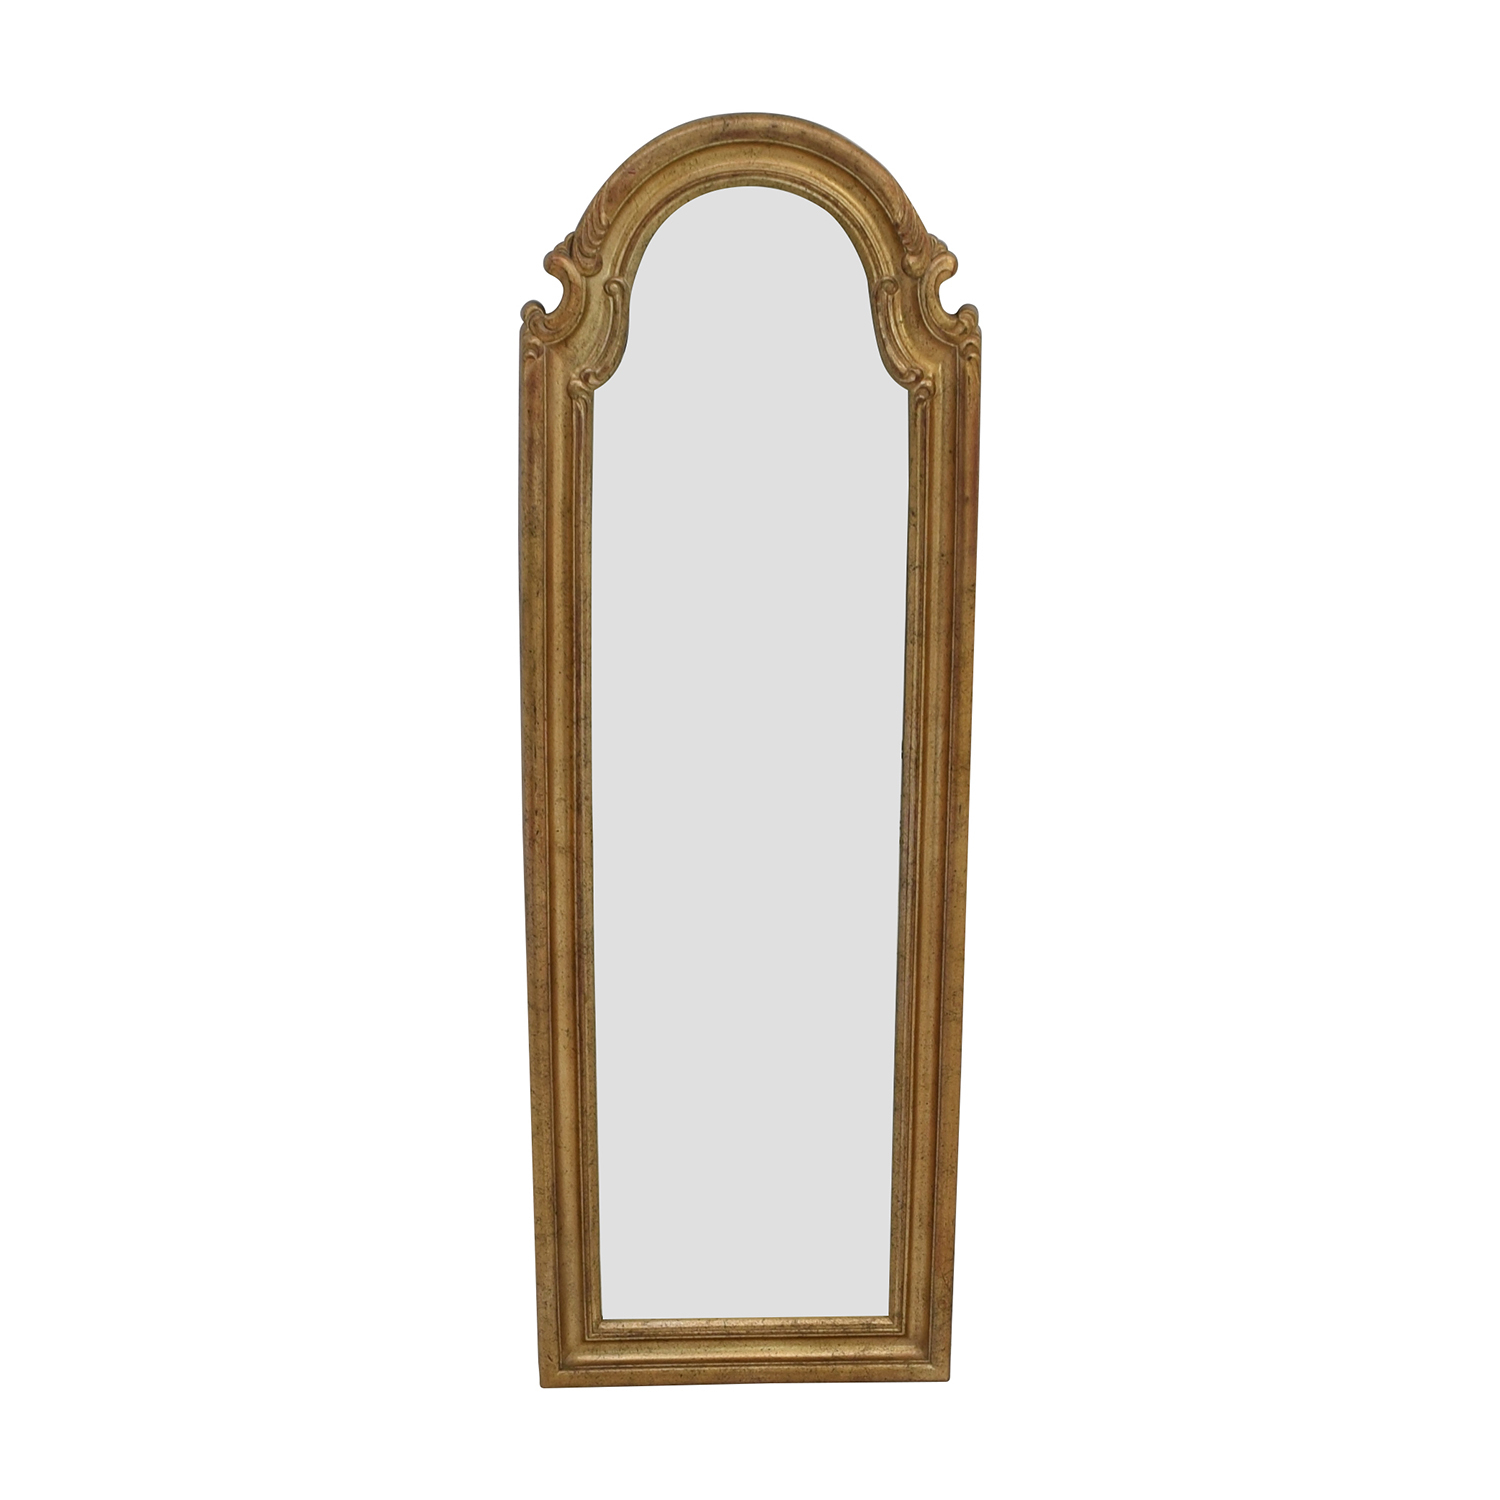 59% Off – Bombay Company Bombay Co Antique Gold Wall Mirror / Decor Within Gold Arch Wall Mirrors (View 3 of 30)